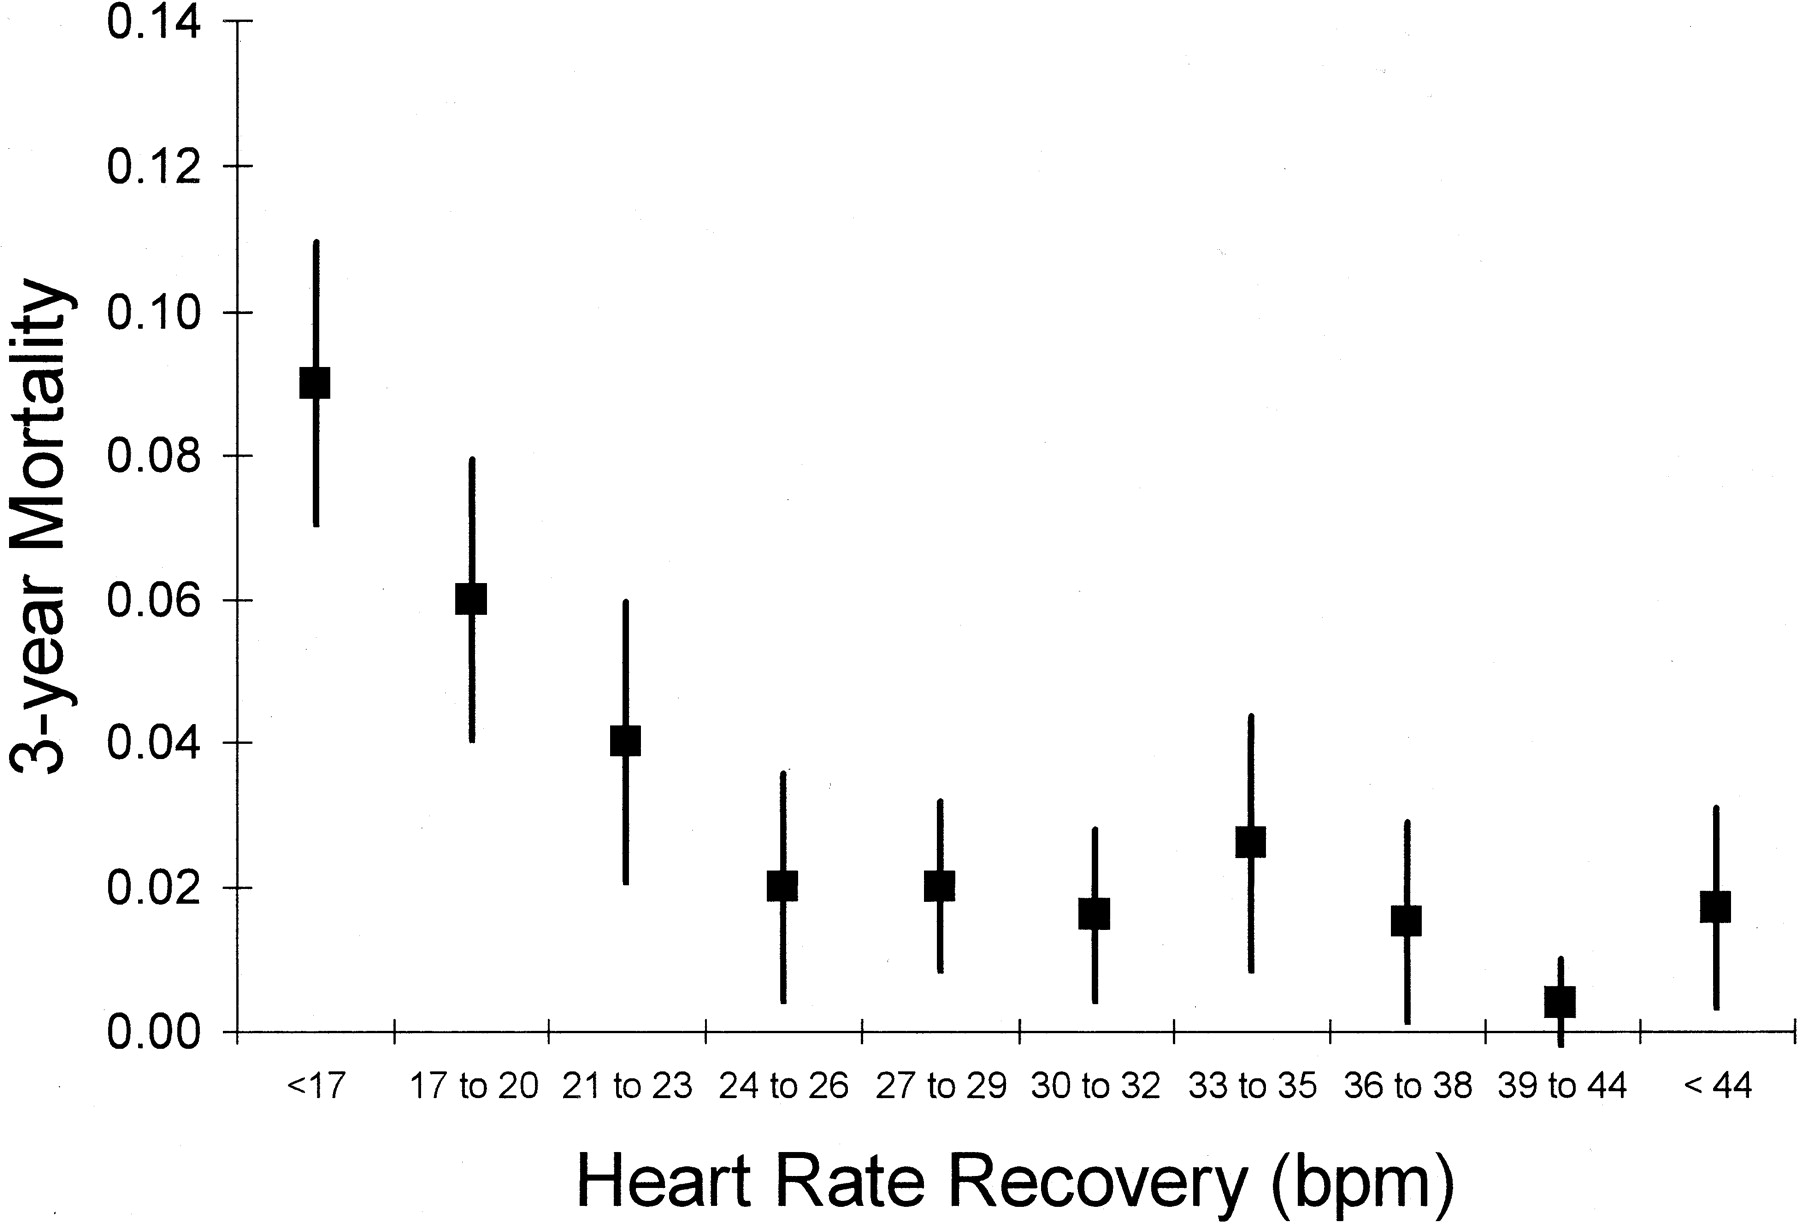 Heart Rate Recovery Immediately After Treadmill Exercise and